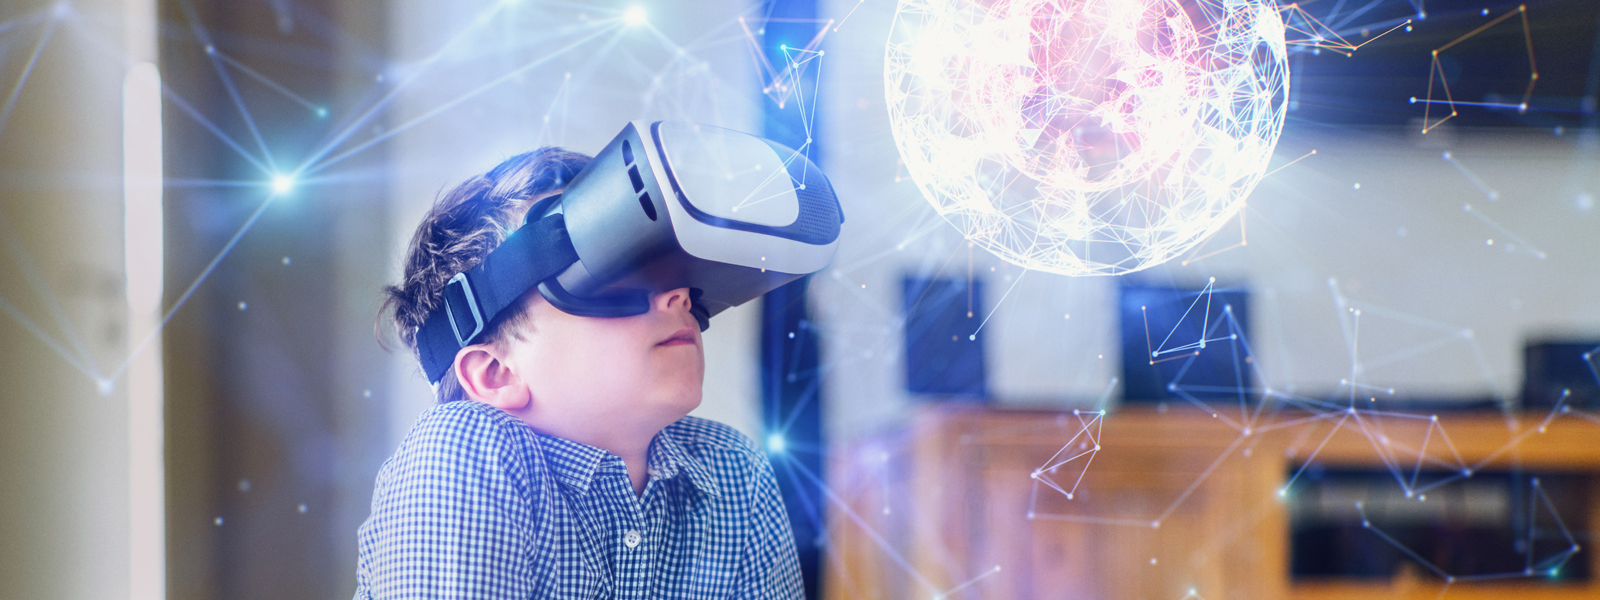 boy with virtual-reality goggles amazed by crystalline structure